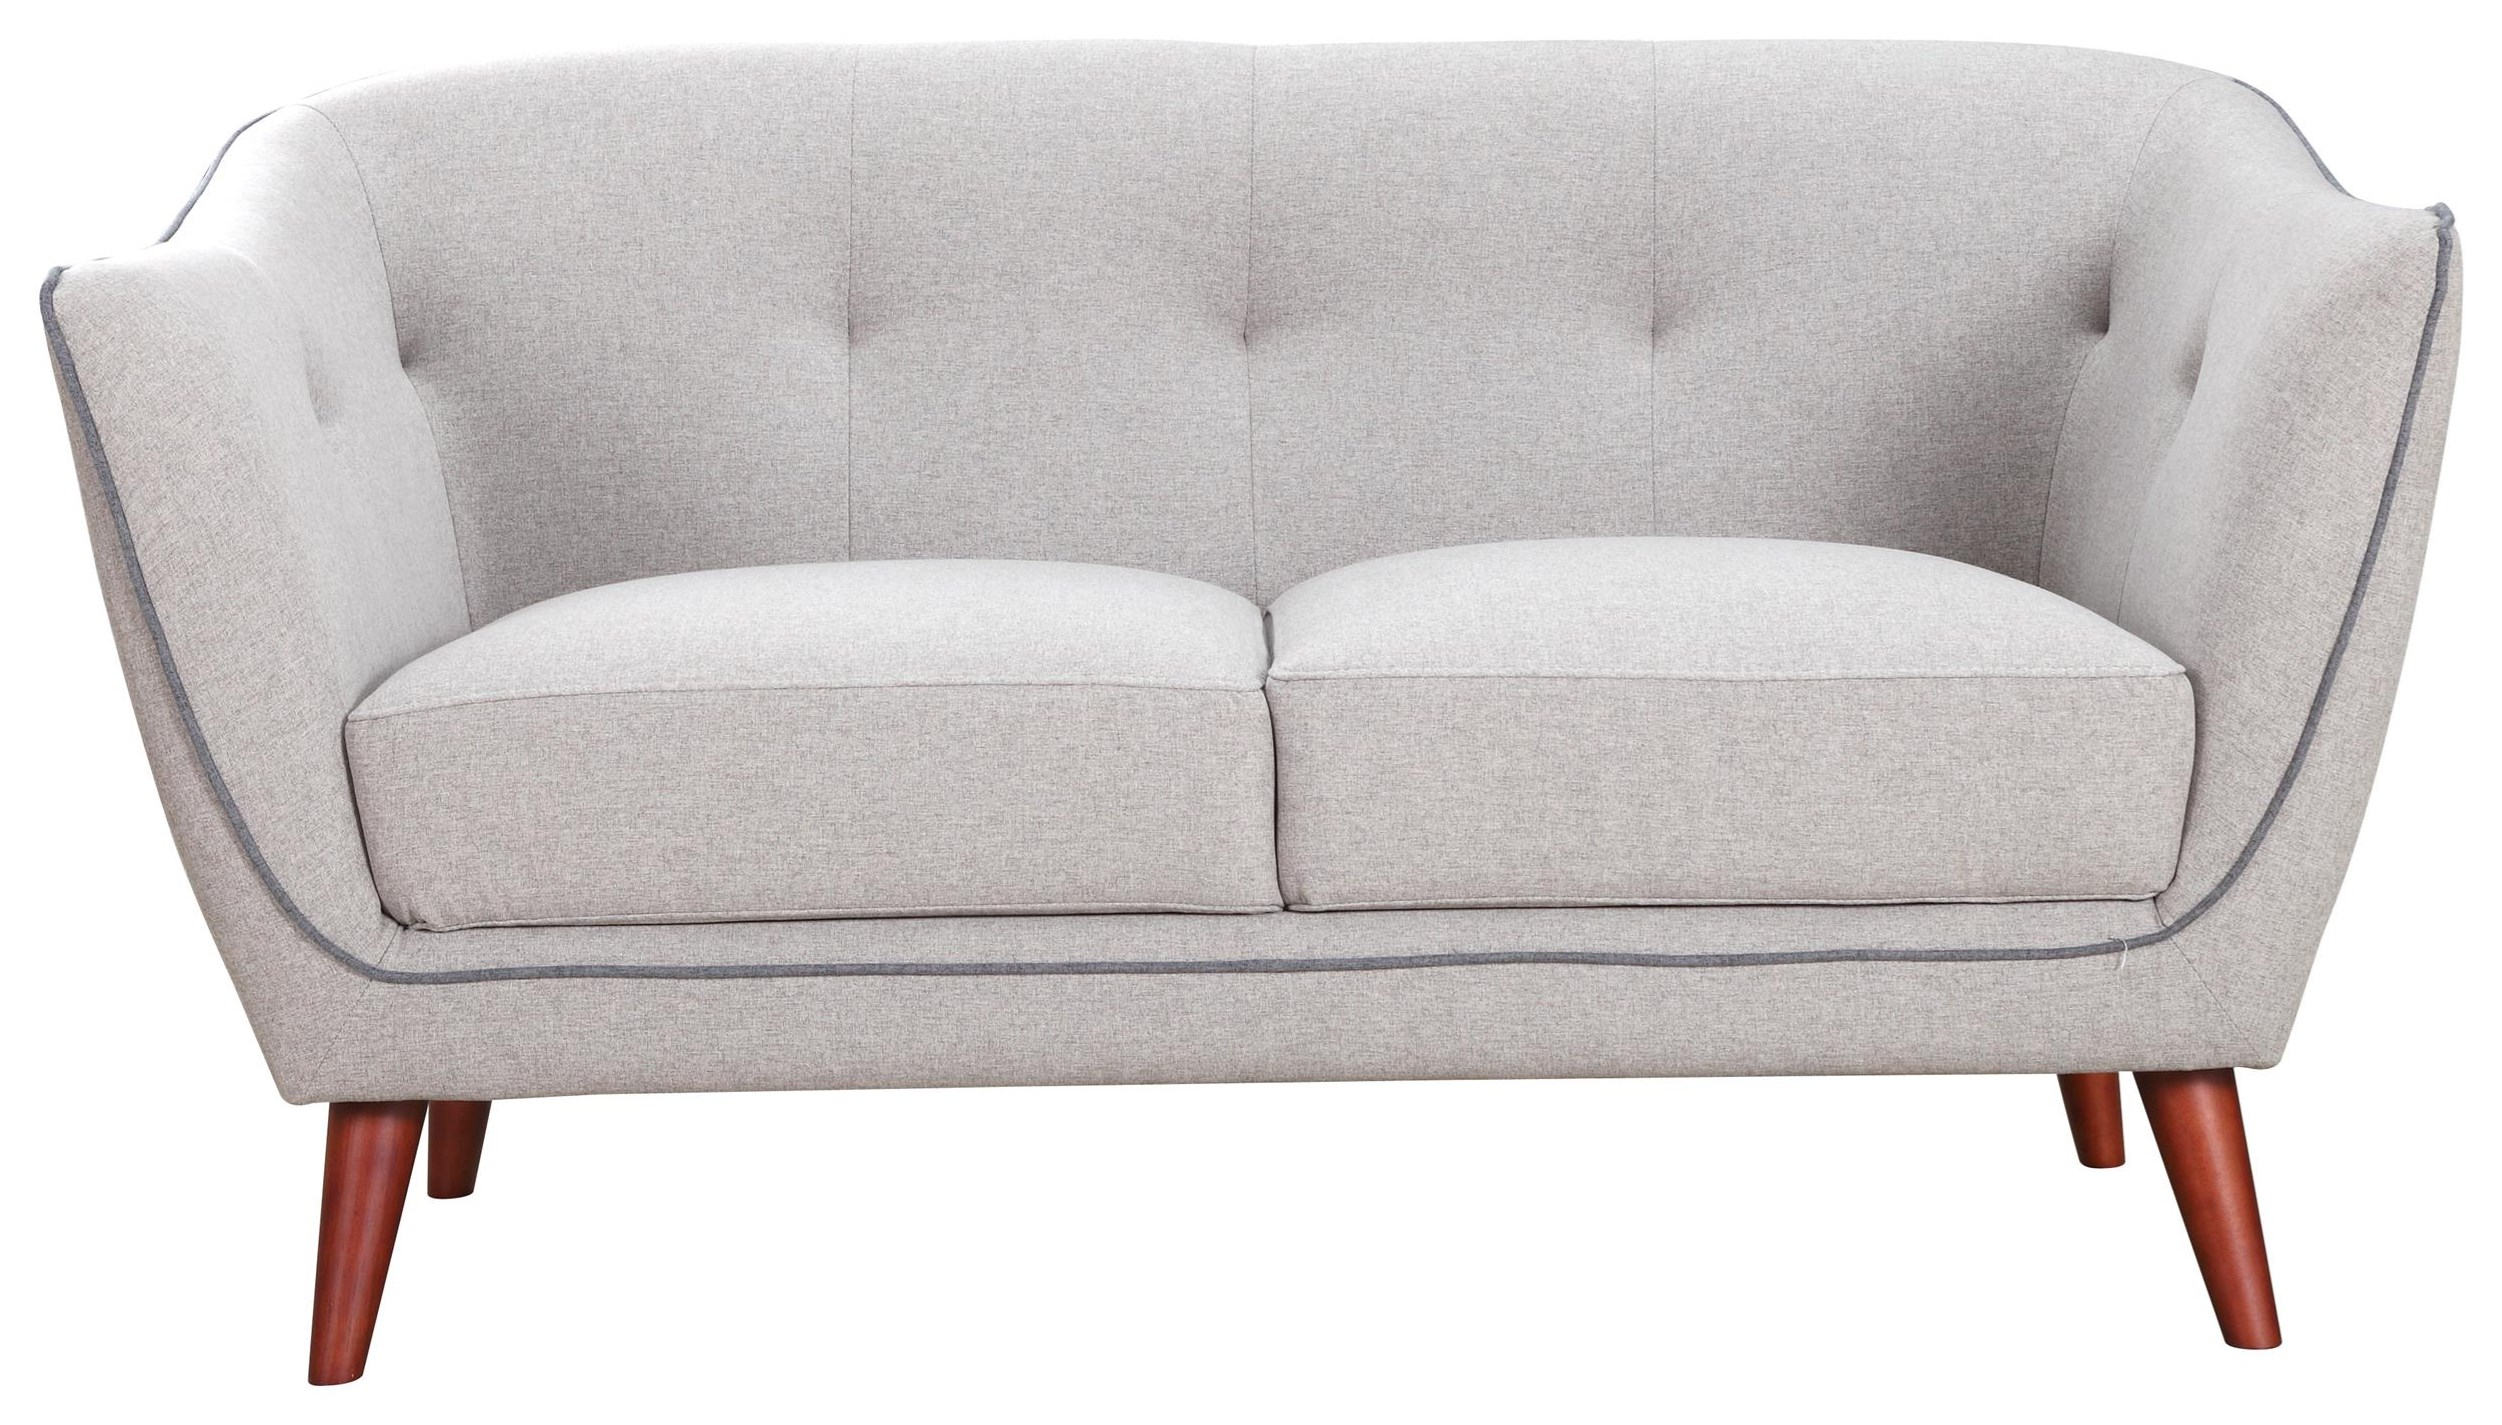 Sunday Loveseat by Urban Chic at Beck's Furniture